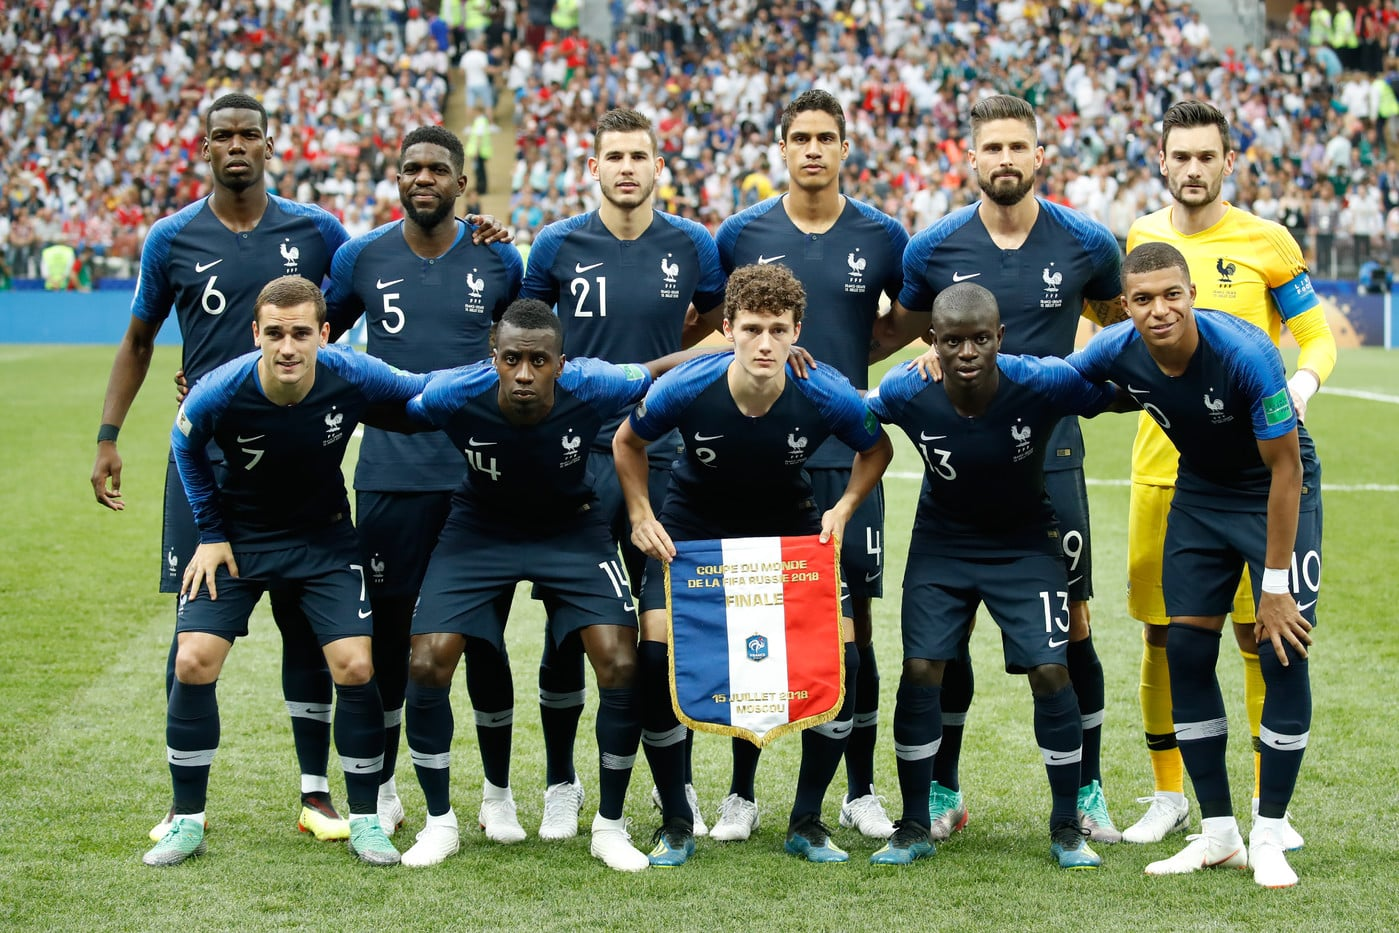 chaussures-football-nike-magista-equipe-france-finale-2018-juillet-2018